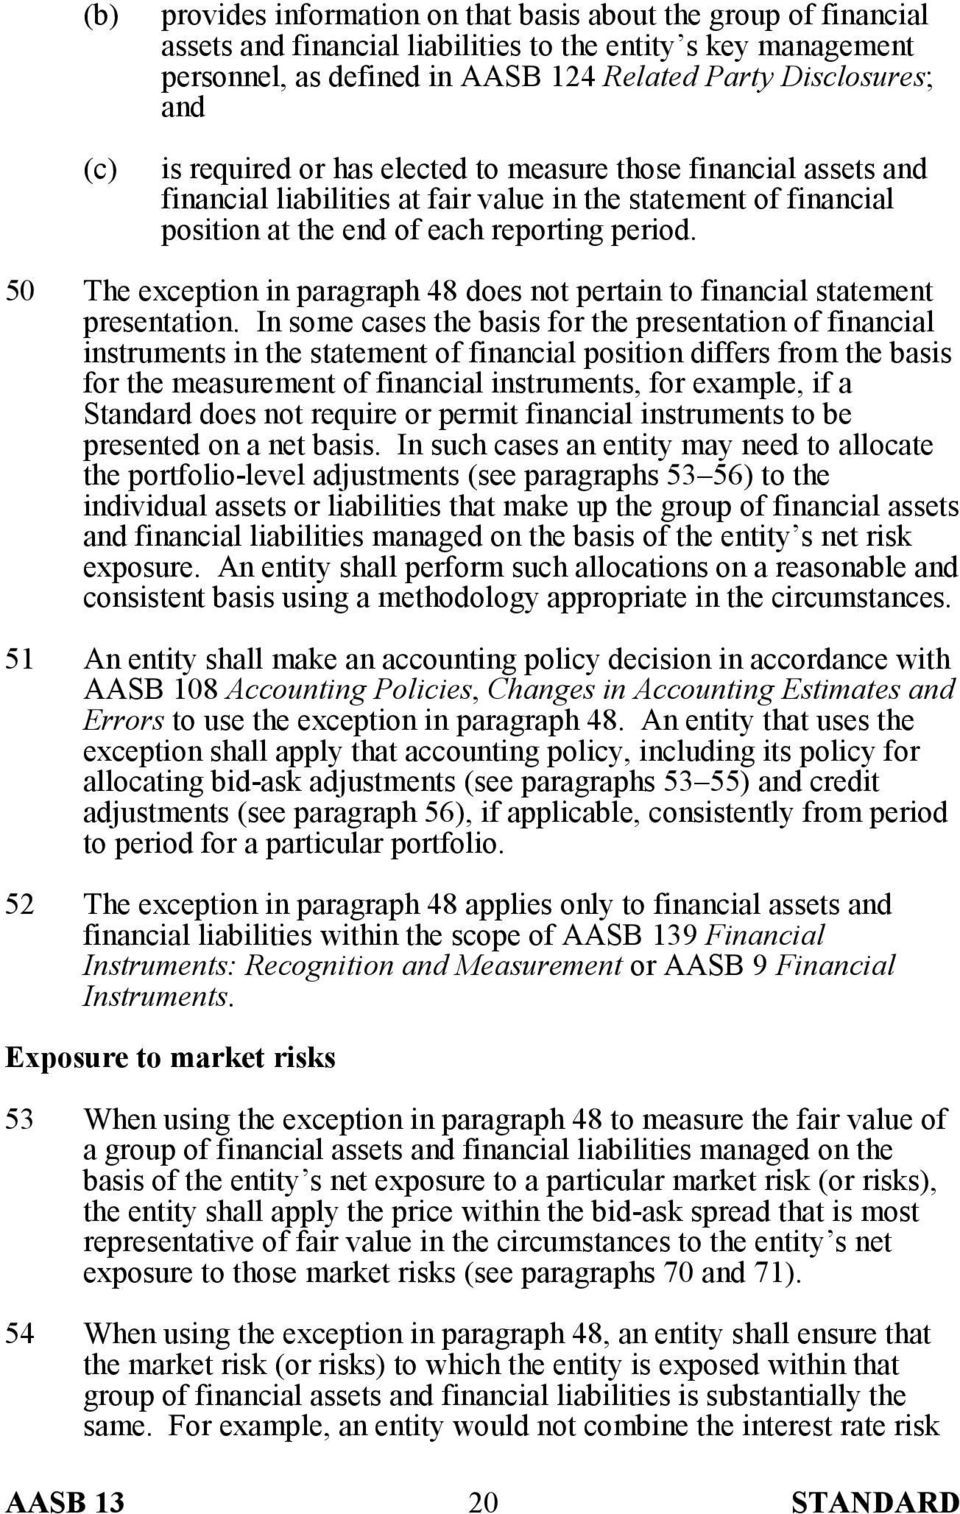 50 The exception in paragraph 48 does not pertain to financial statement presentation.